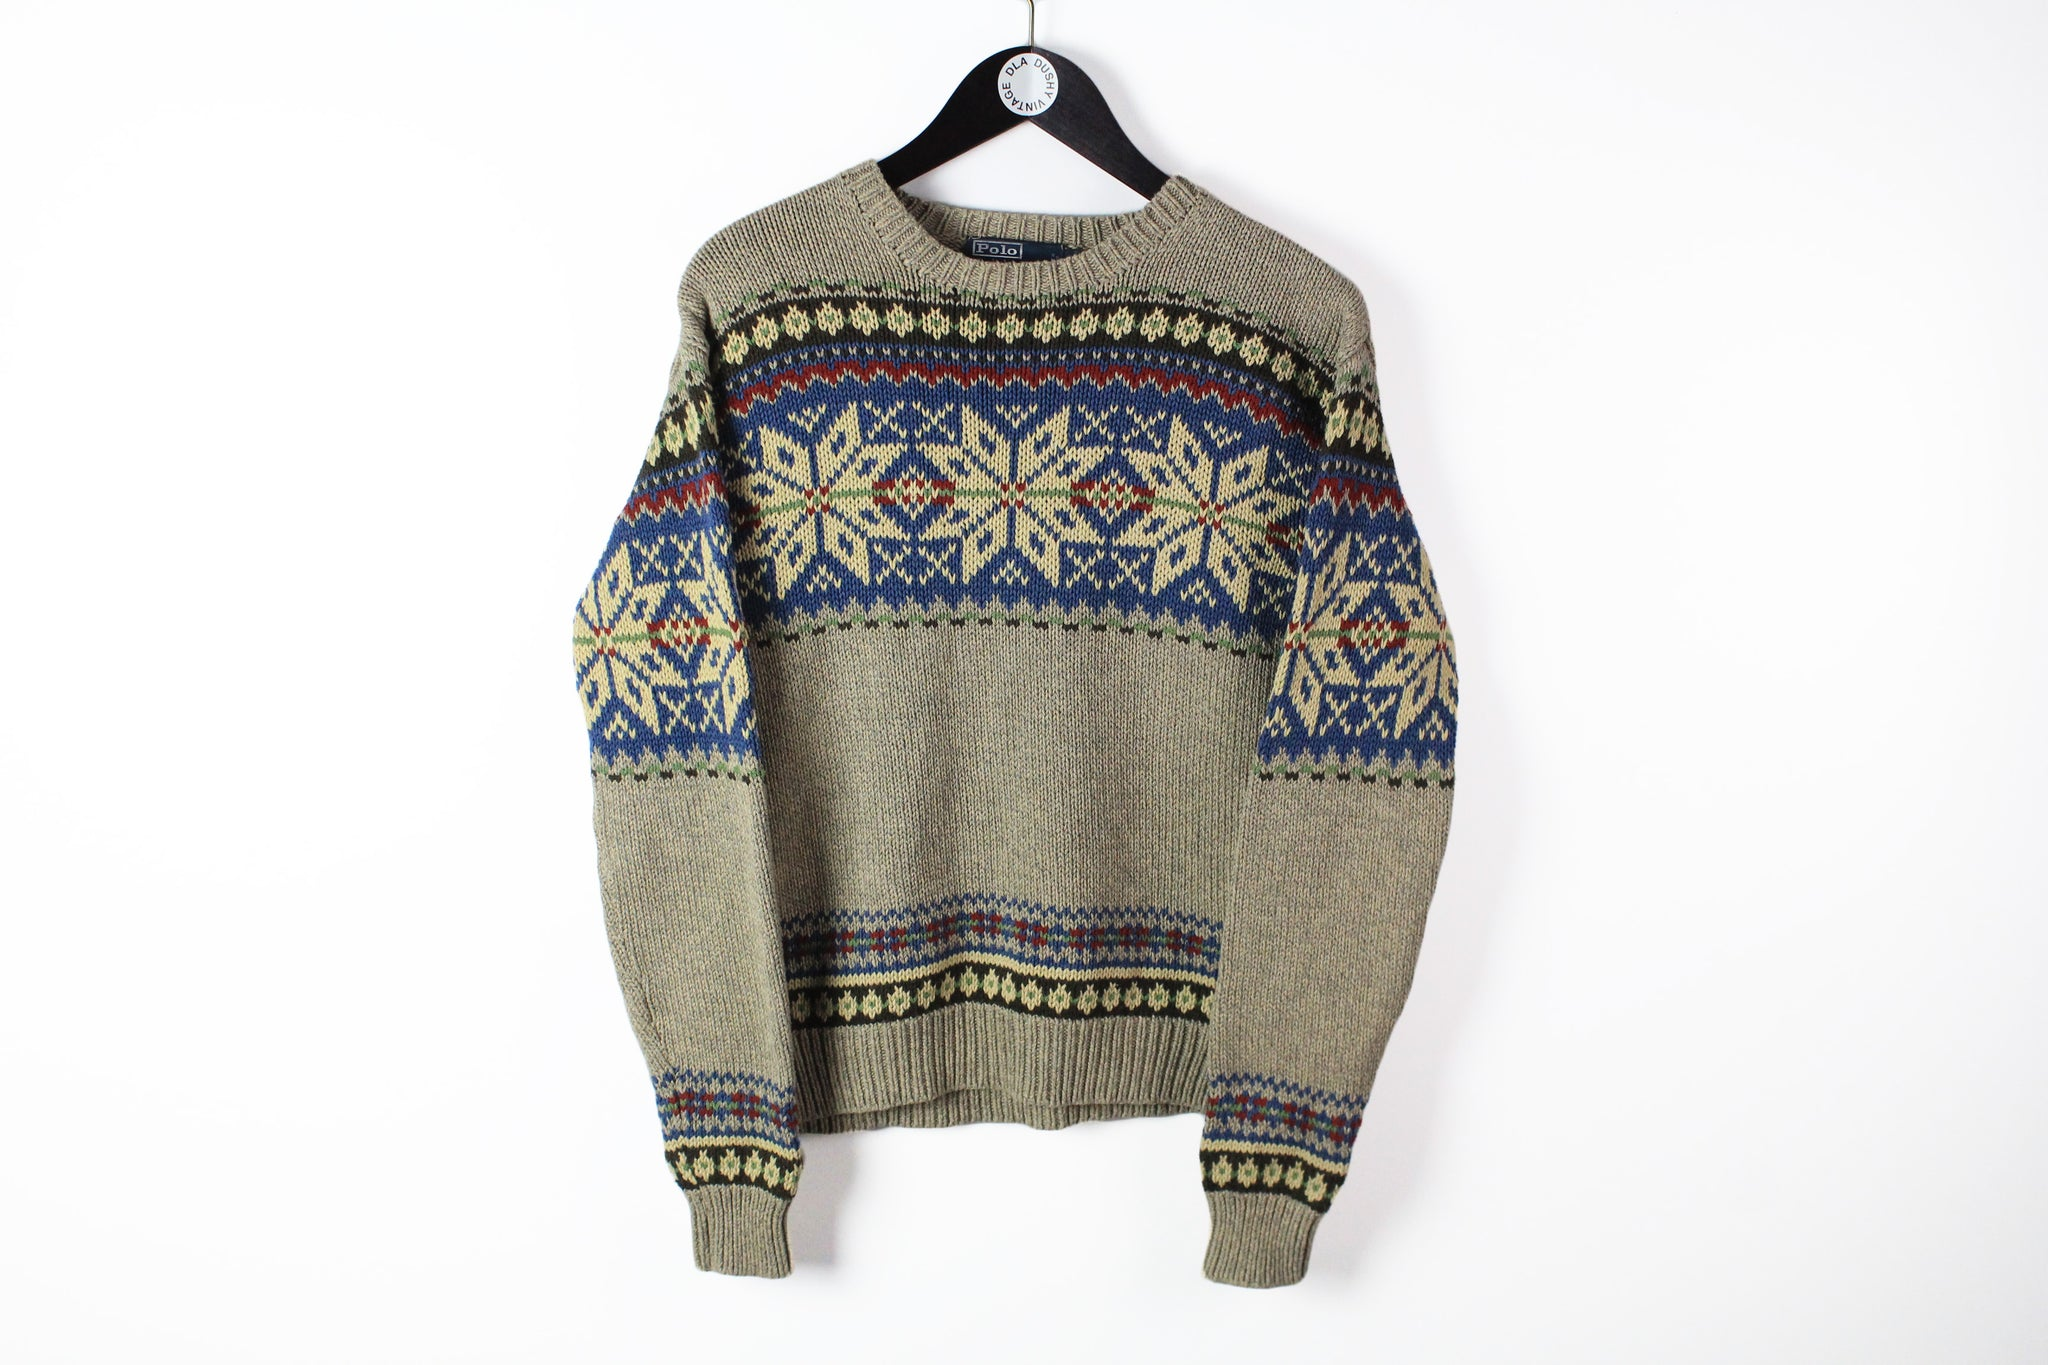 Vintage Ralph Lauren Sweater Small 90s retro style brown Nordic pattern jumper